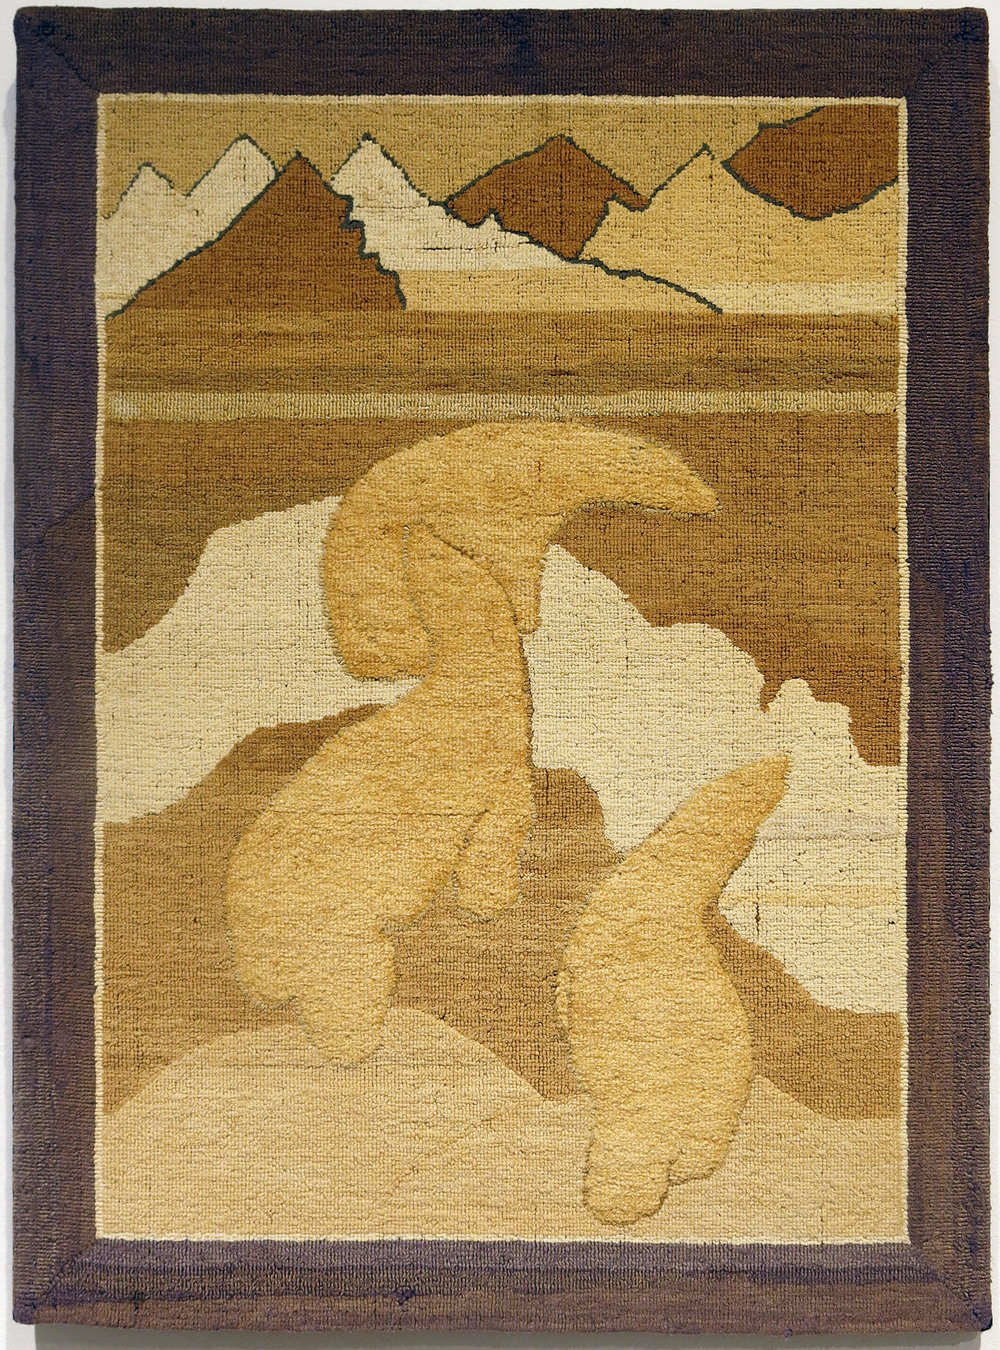 Anonymous, The Grenfell Mission,  3 Polar Bears on Iceberg,  c. 1936, silk, cotton, burlap, 20 1/2h x 27 1/2w in.